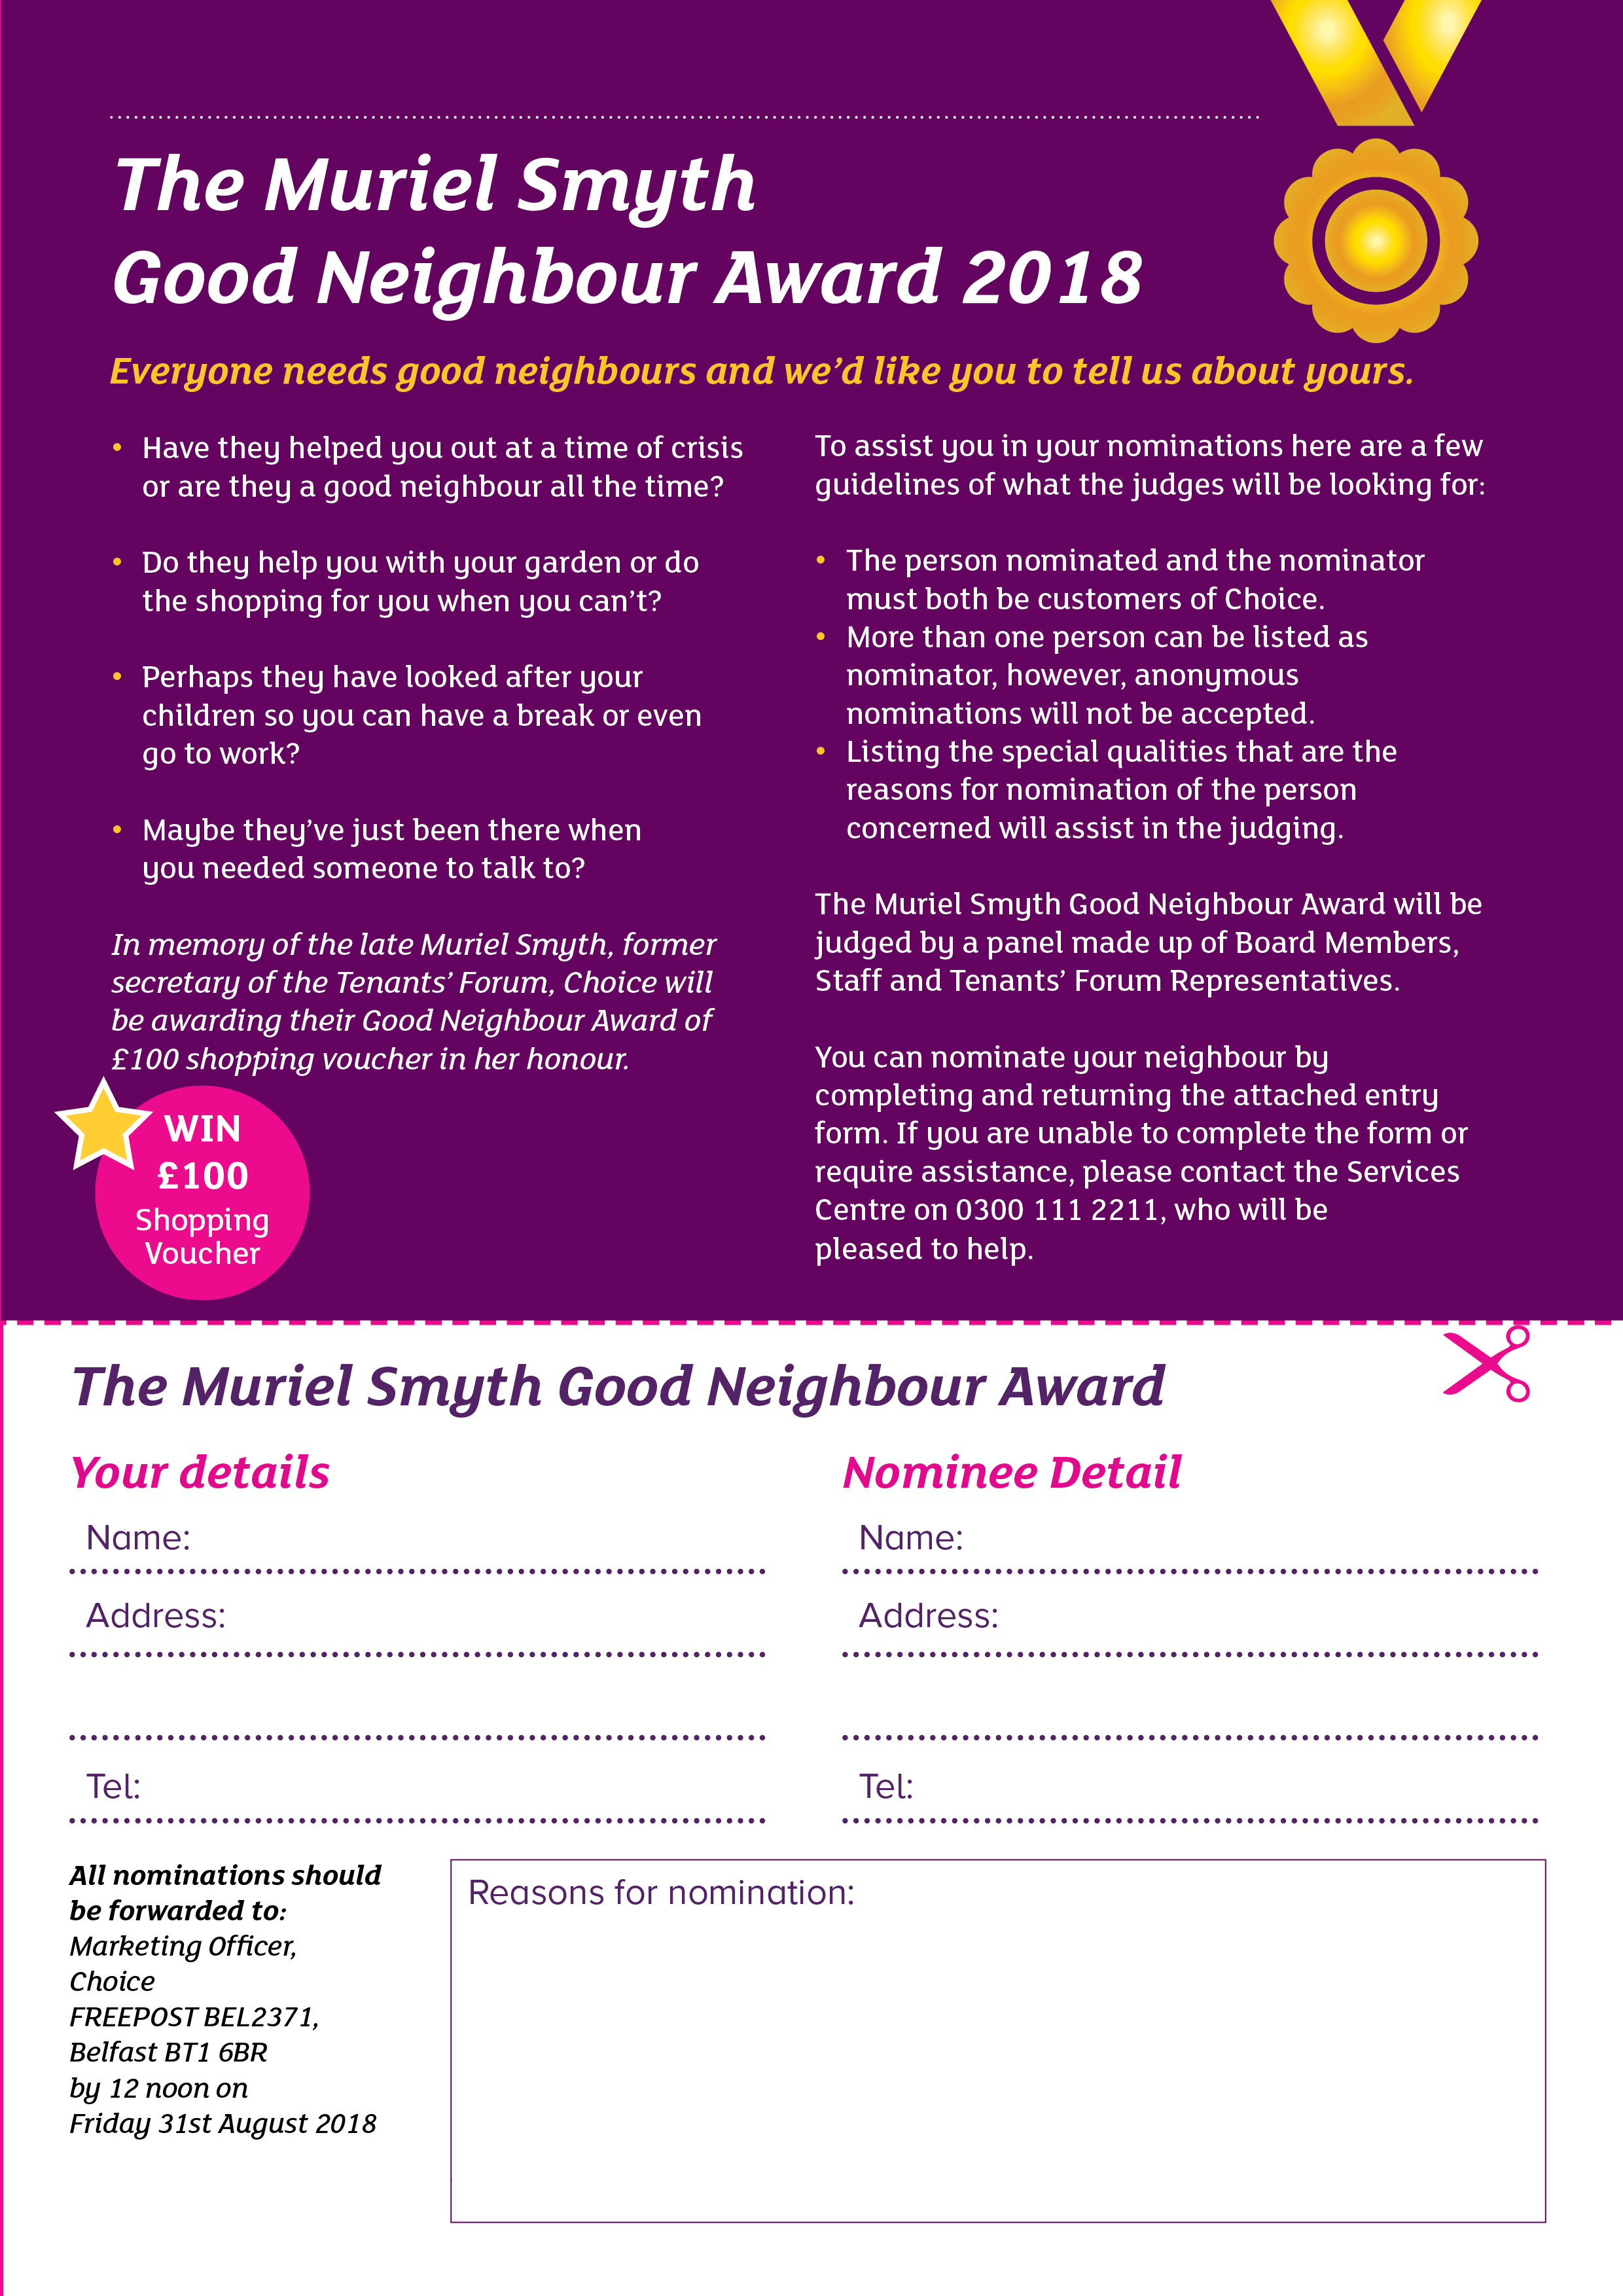 Good Neighbour Award